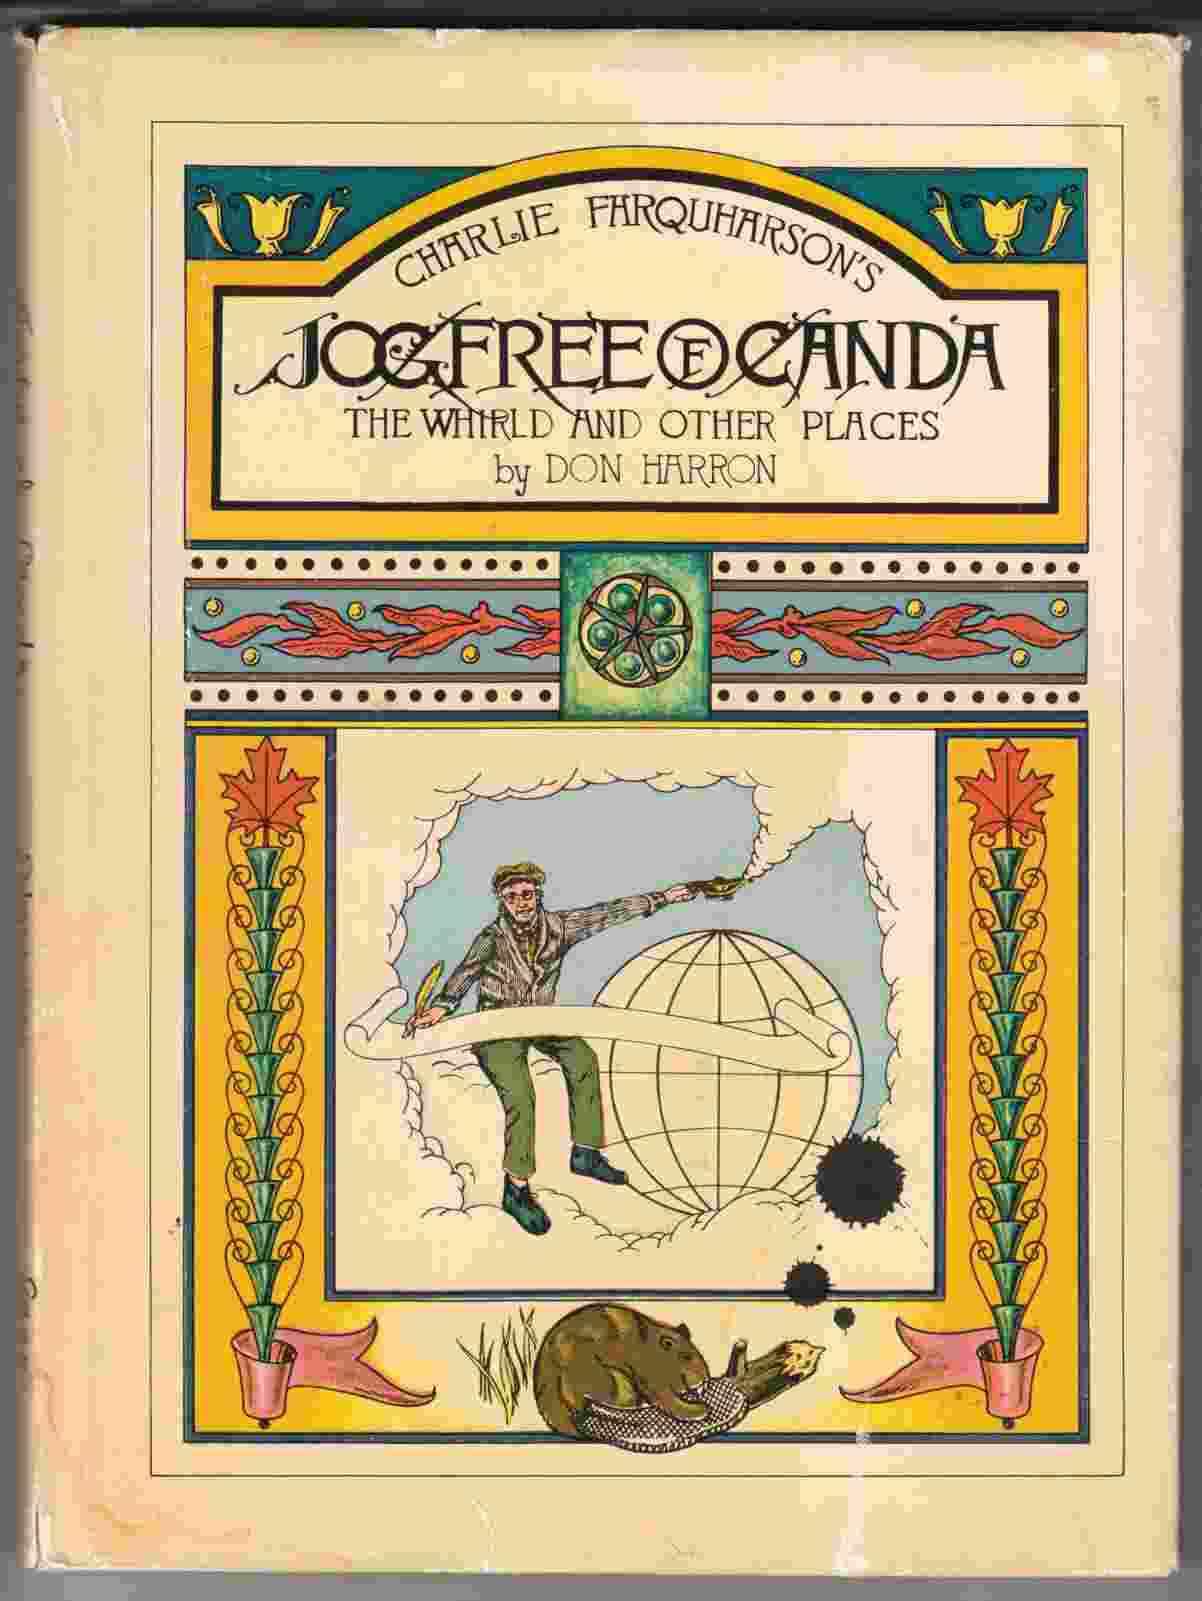 Image for Charlie Farquharson's Jogfree of Canda, the Whirld and Other Places A Pubic School Jogfree